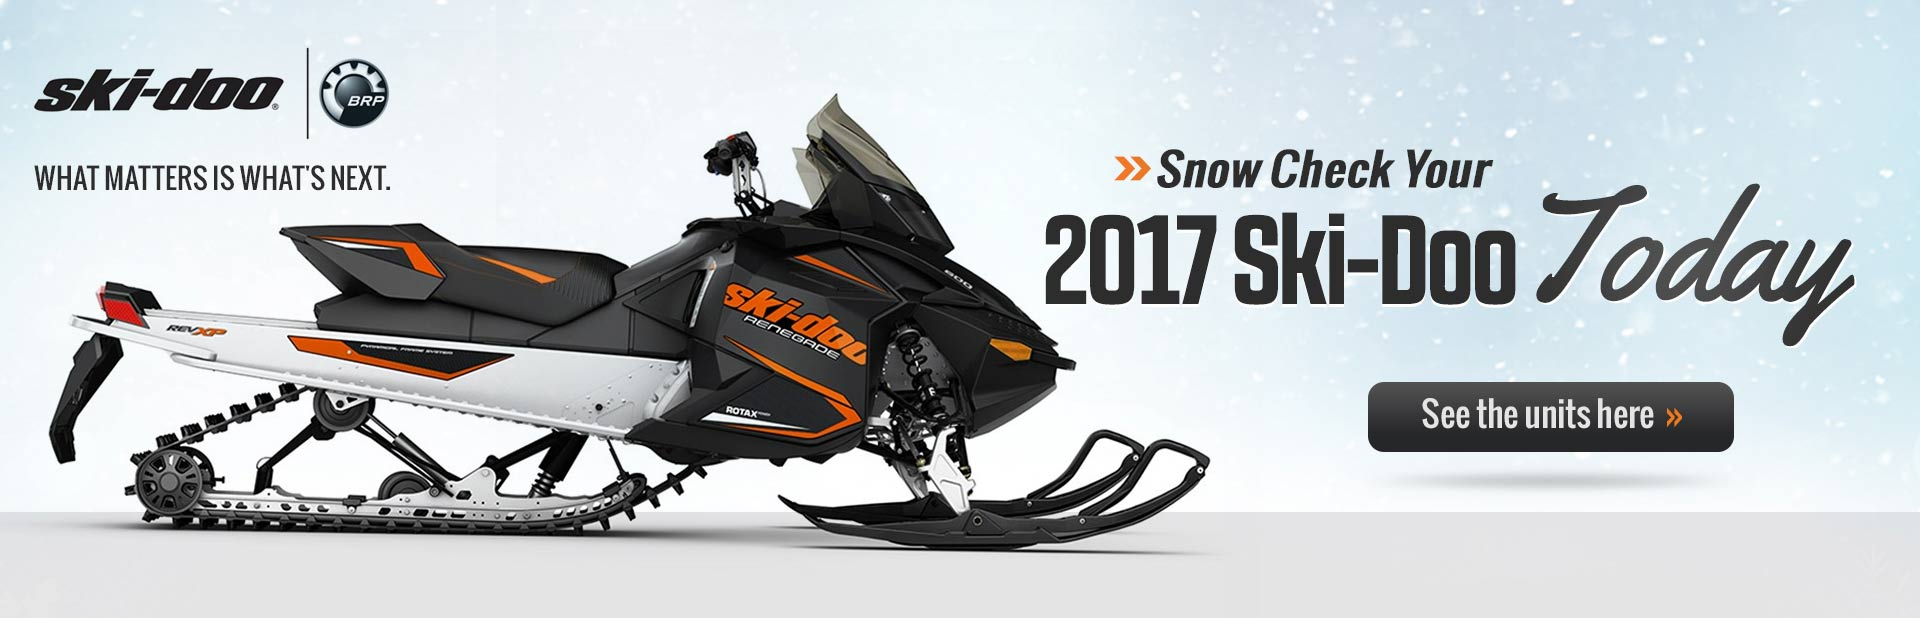 2017 Ski-Doo Snow Check: Click here to view the units.